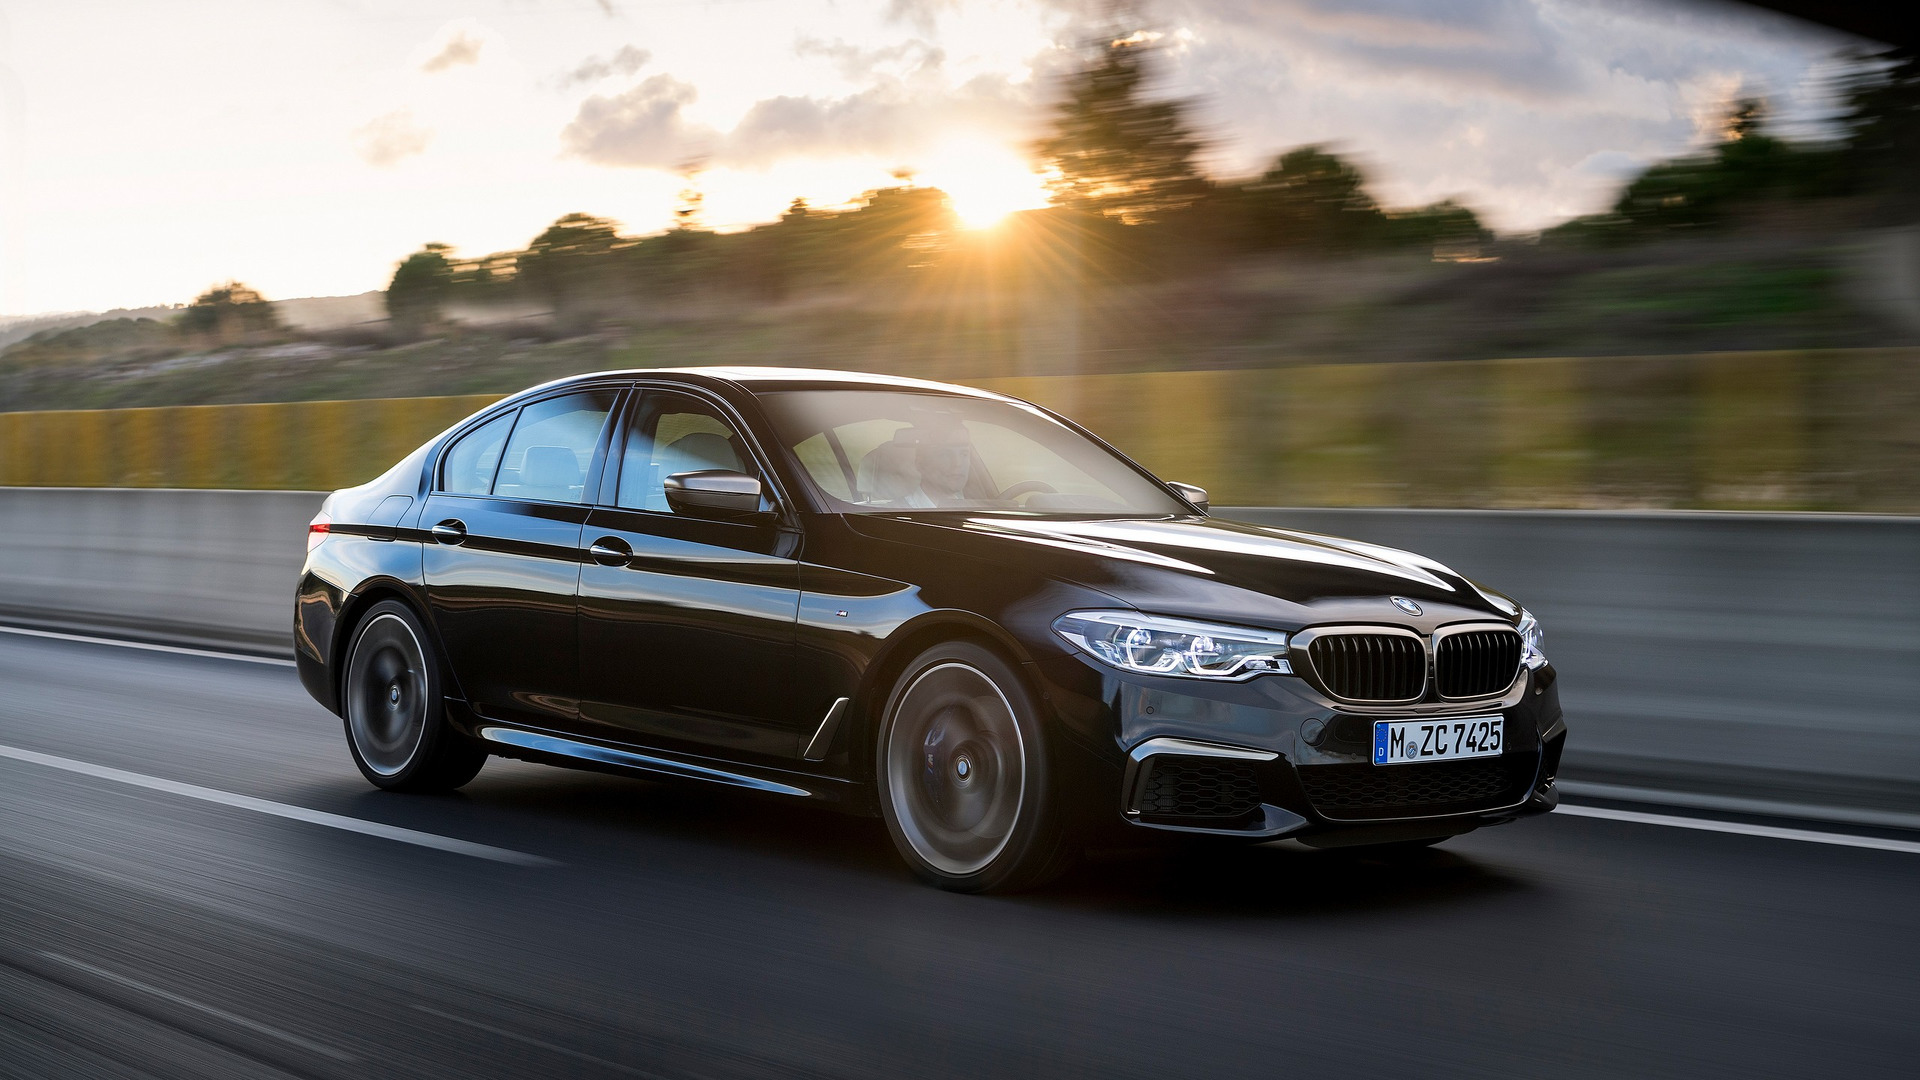 2018 BMW M550i xDrive lands in U.S. as quickest 5 Series ever d2e1aeb7f